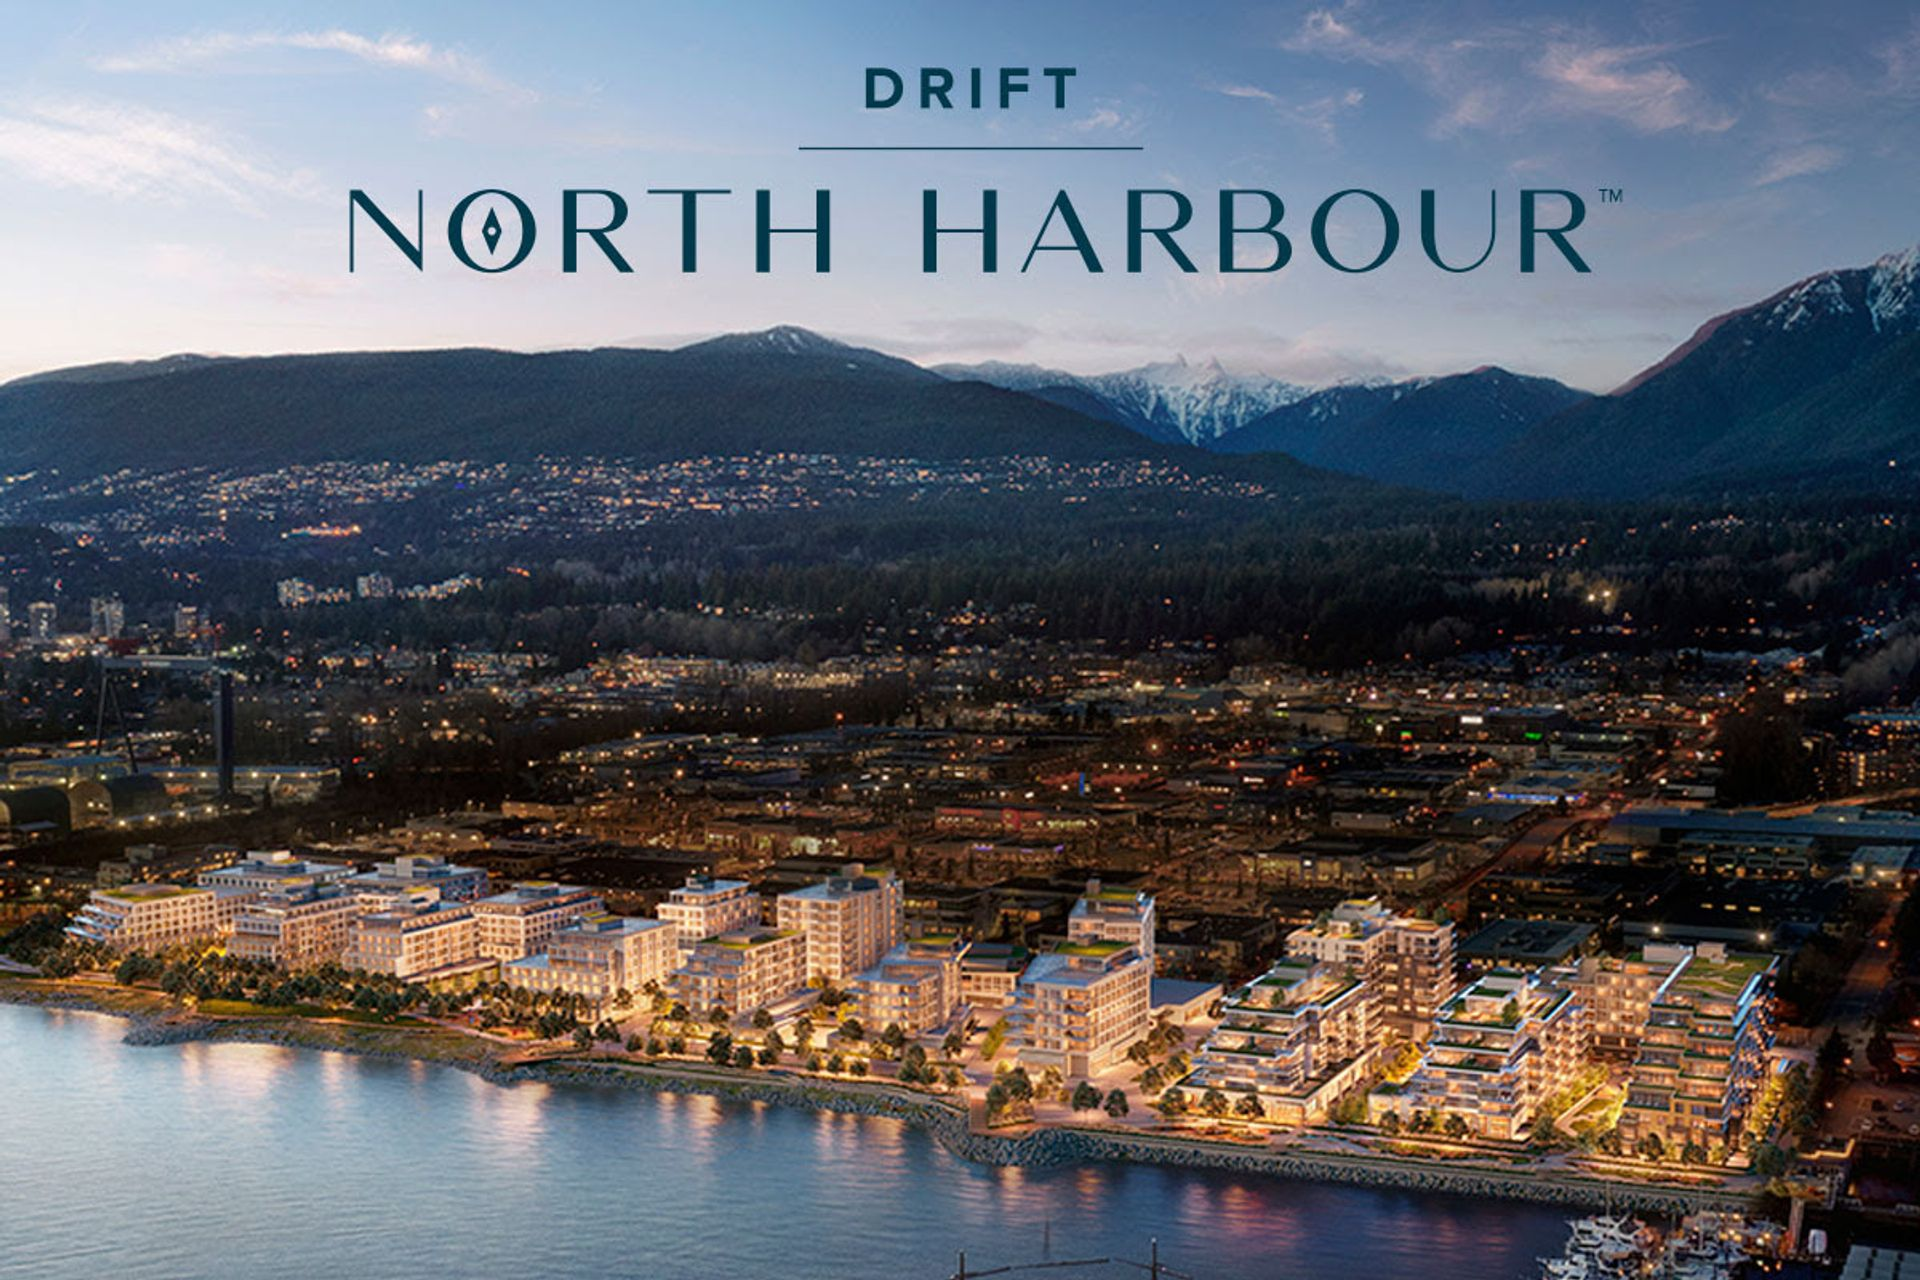 drift-aerial at Drift - North Harbour ( Harbourside Drive, Hamilton, North Vancouver)